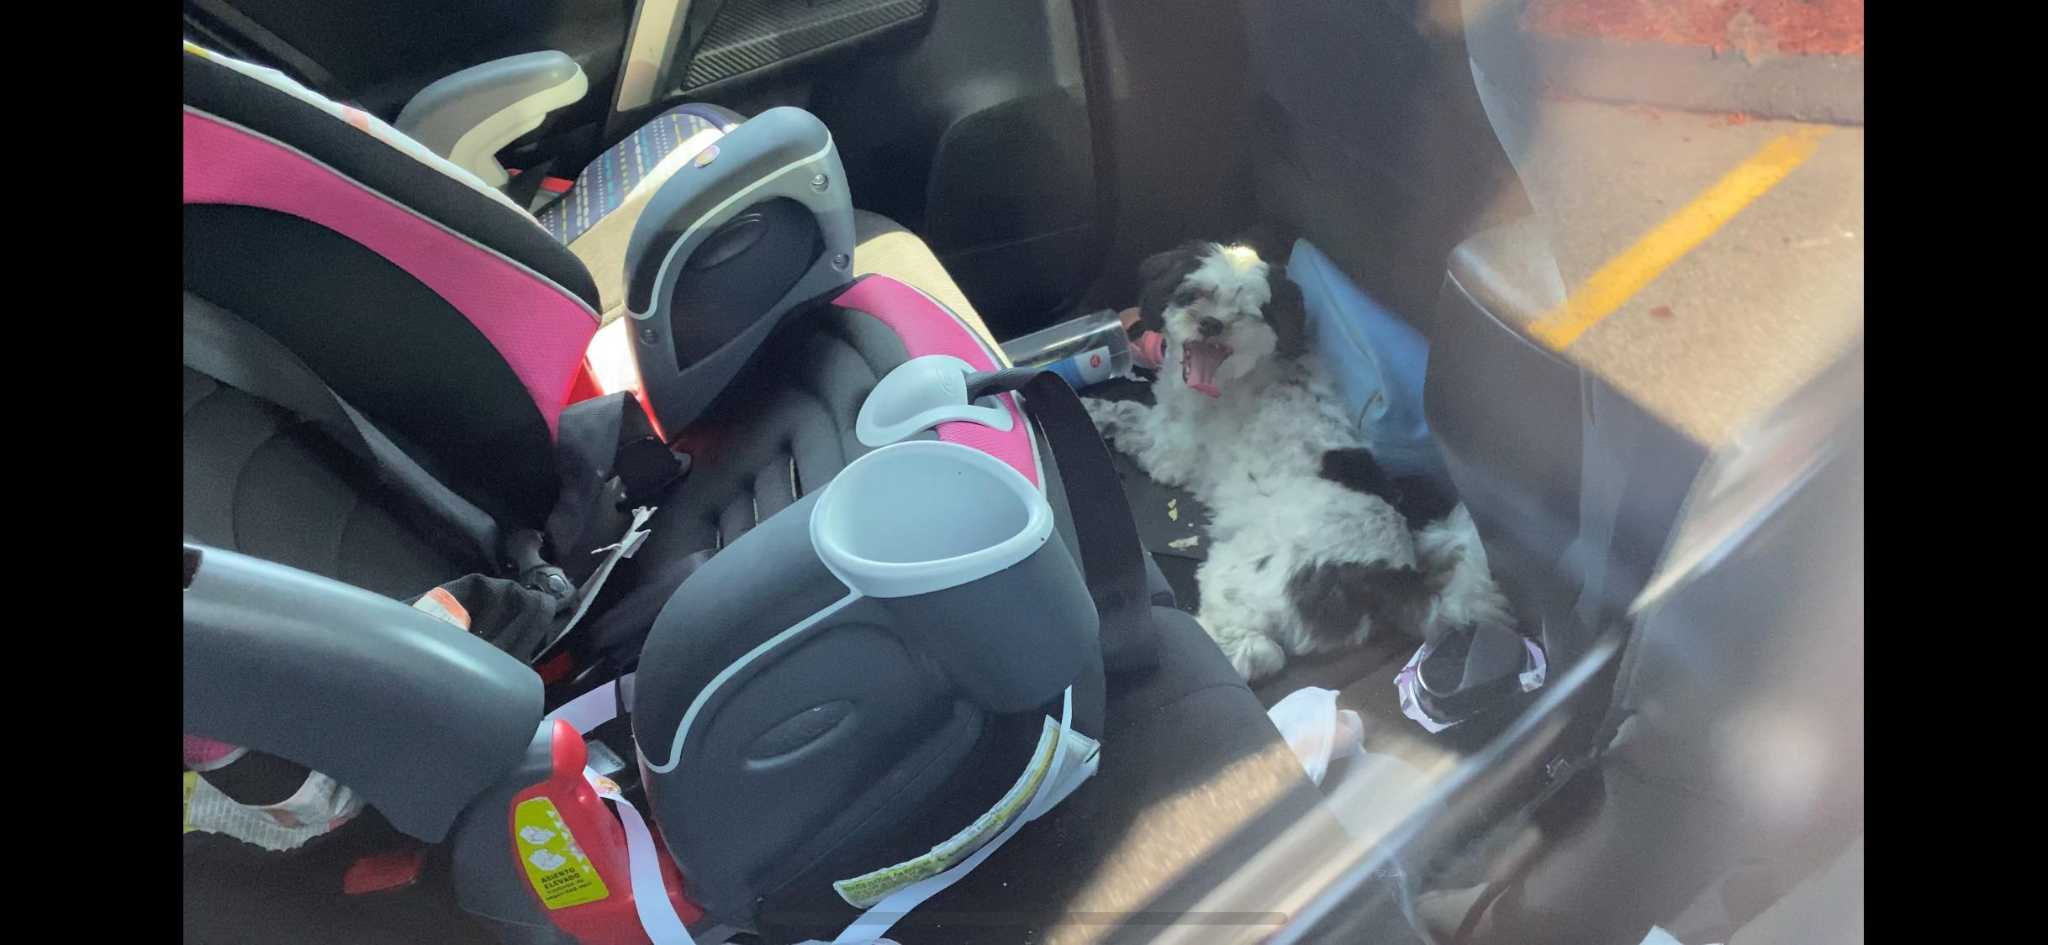 Police: CT man left dog in 102 degree car